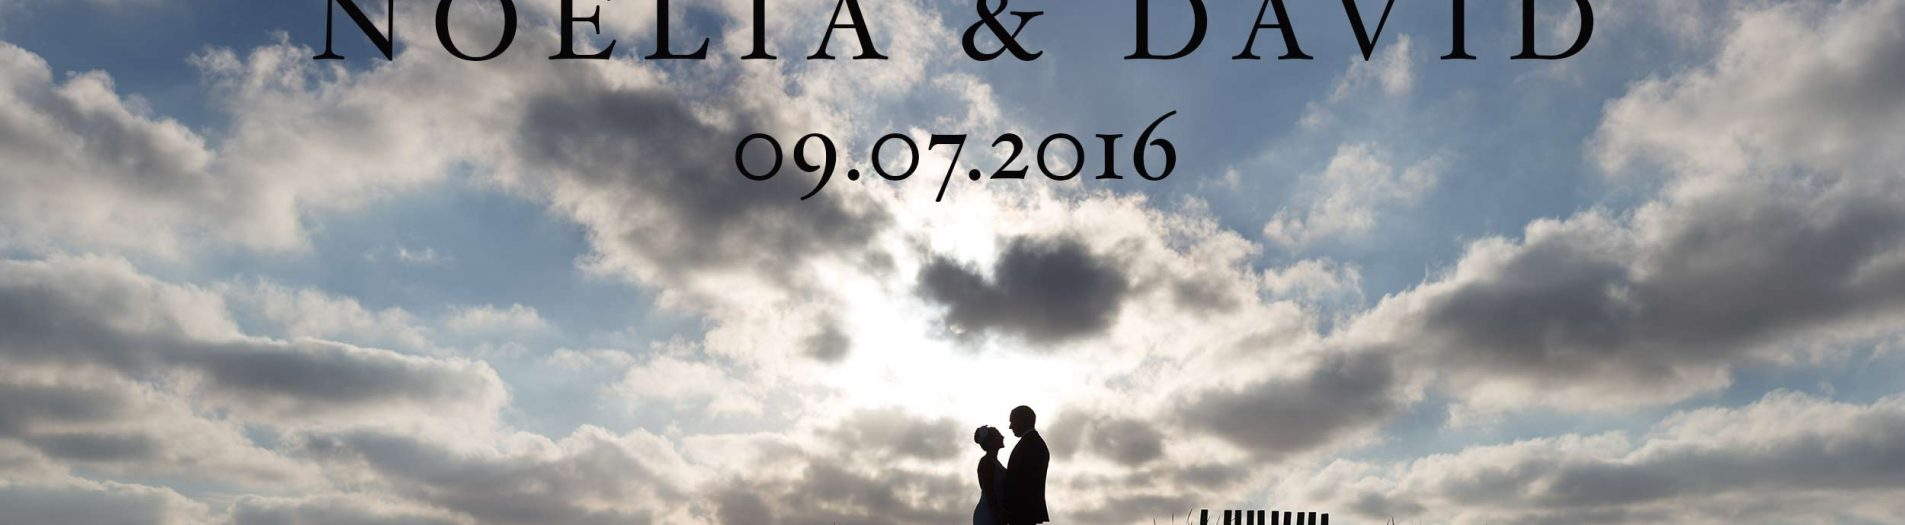 Trailer video boda Noelia y David en Chiclana